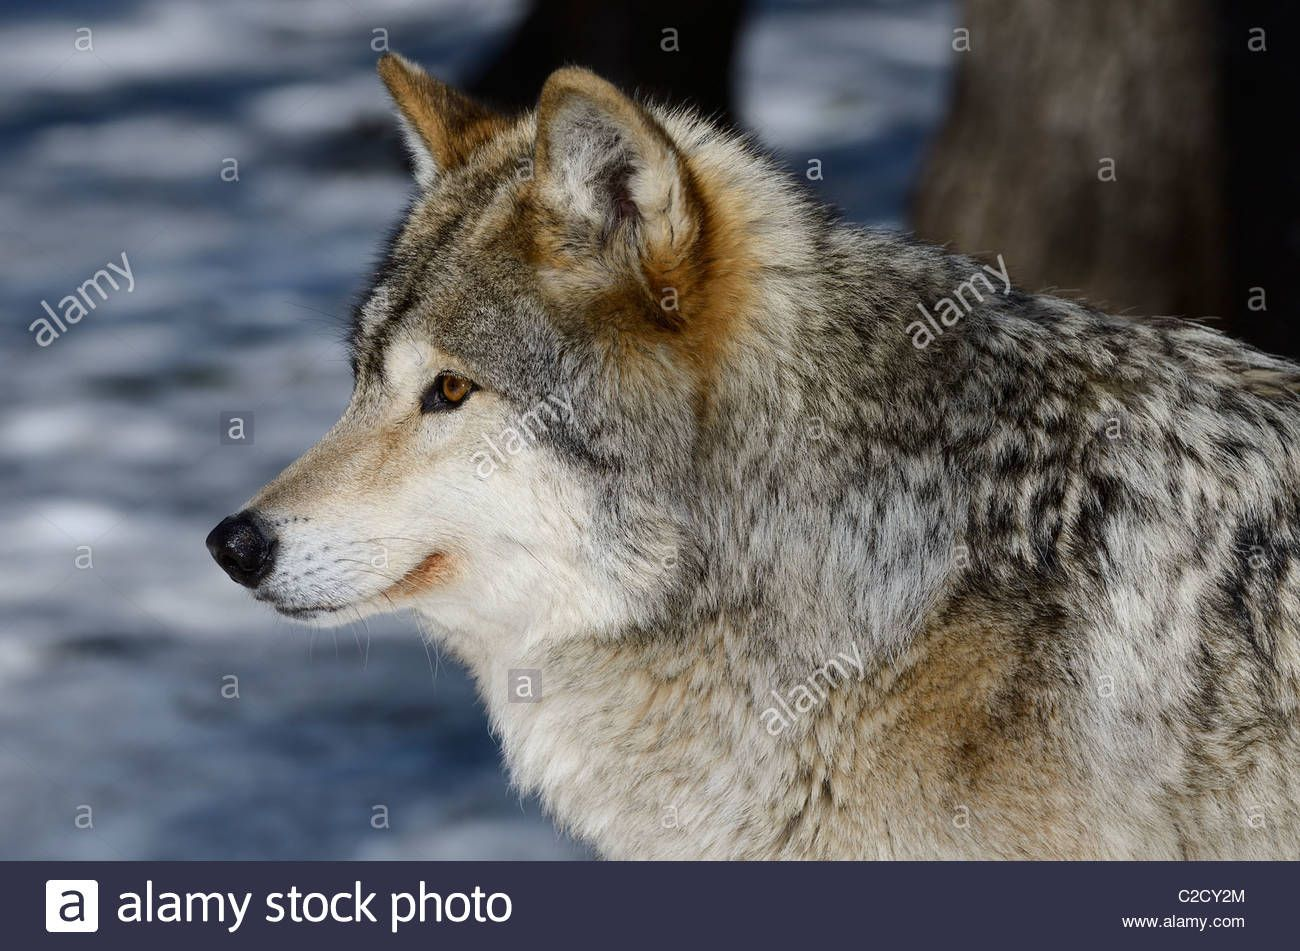 Image result for snow wolf profile Digital Design reference